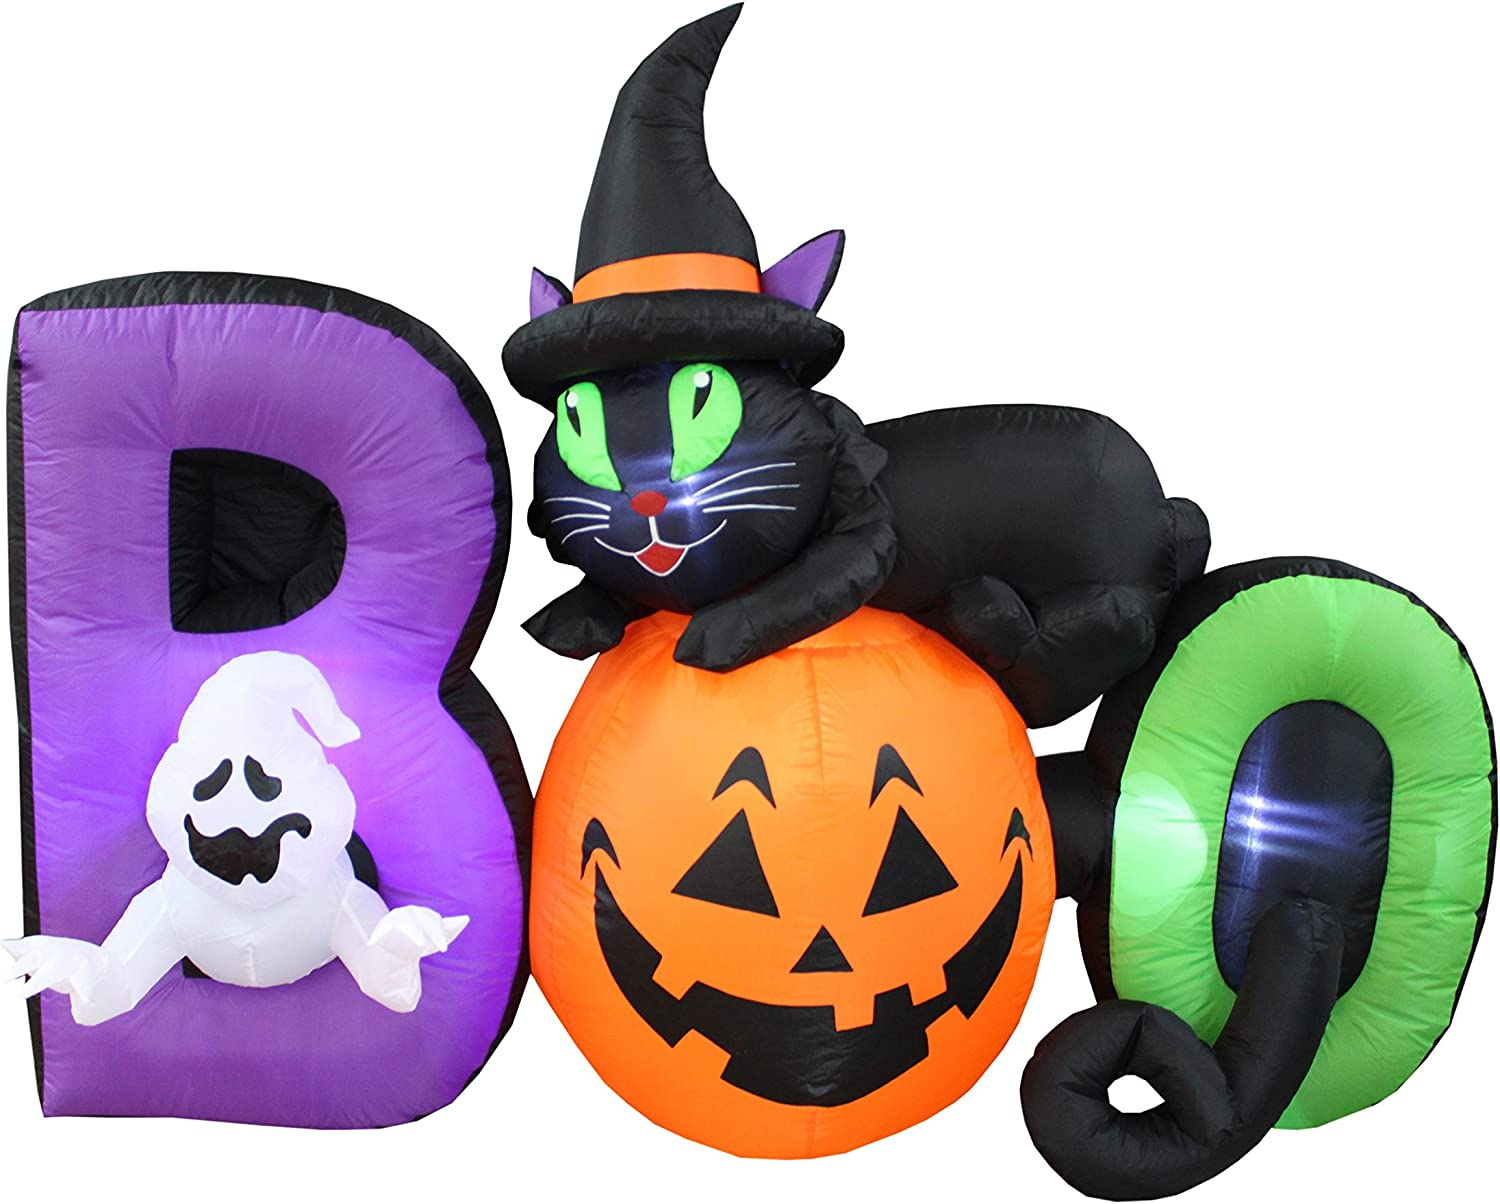 BZB Max outlet 57% OFF Goods 6 Foot Long Lighted Gho Black Inflatable Halloween Cat